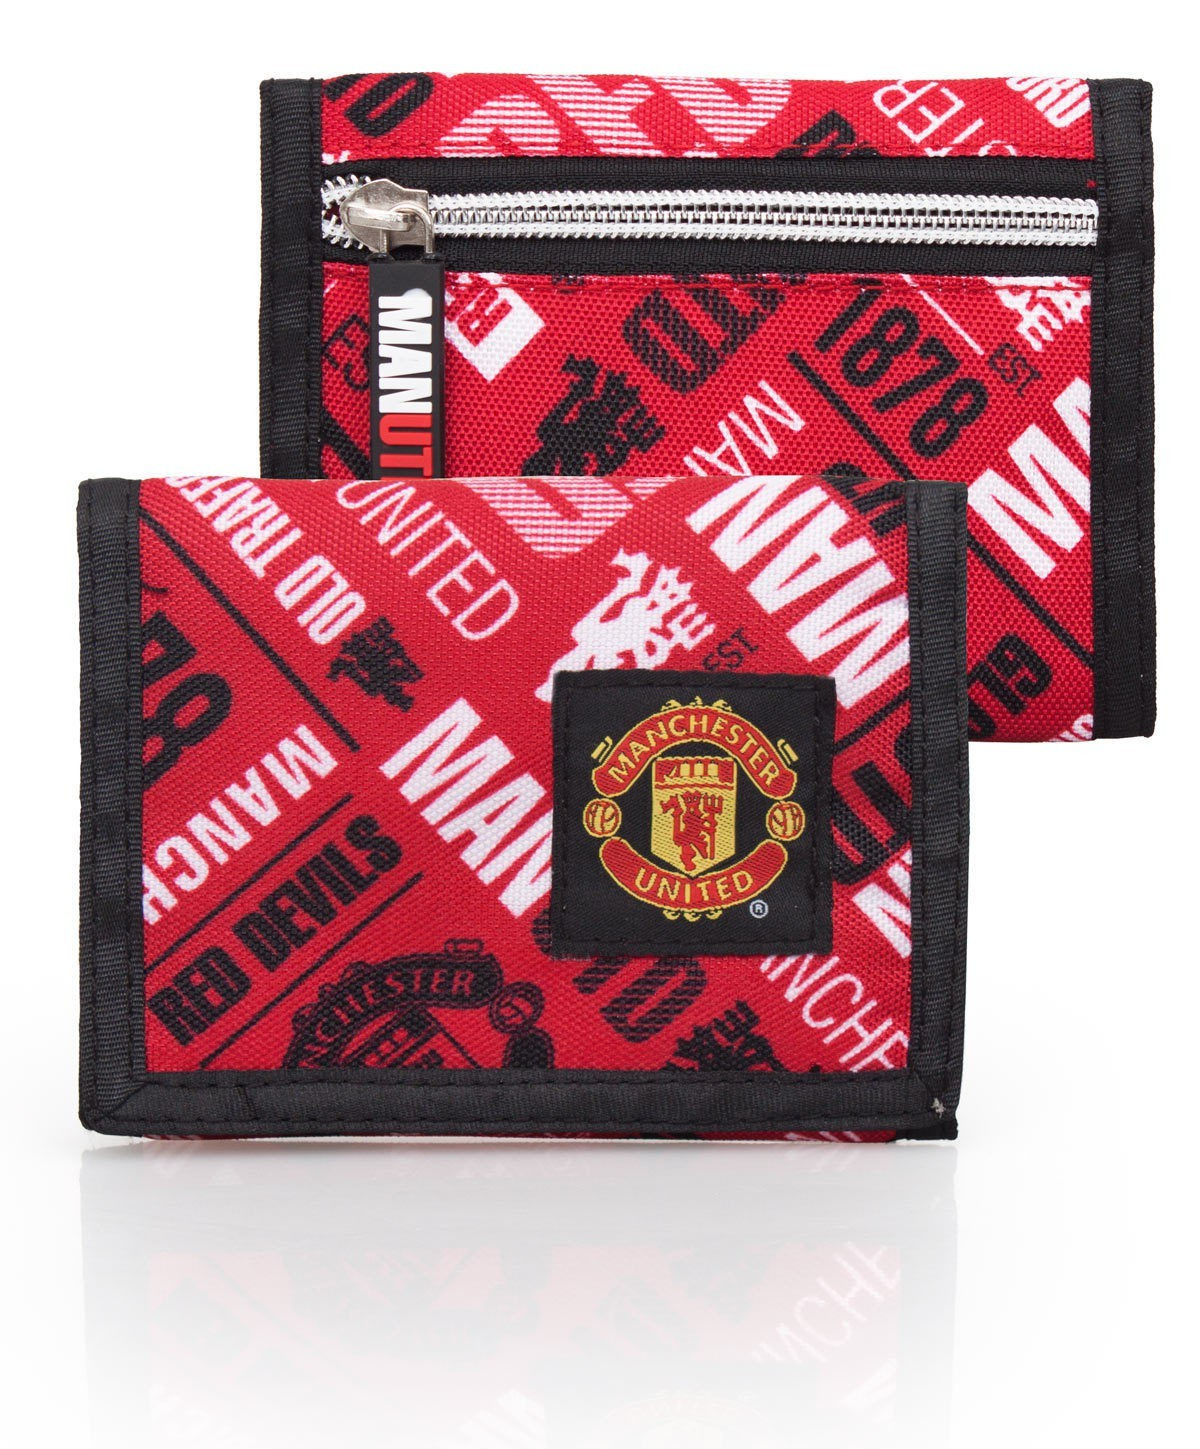 Manchester United Red Wallet